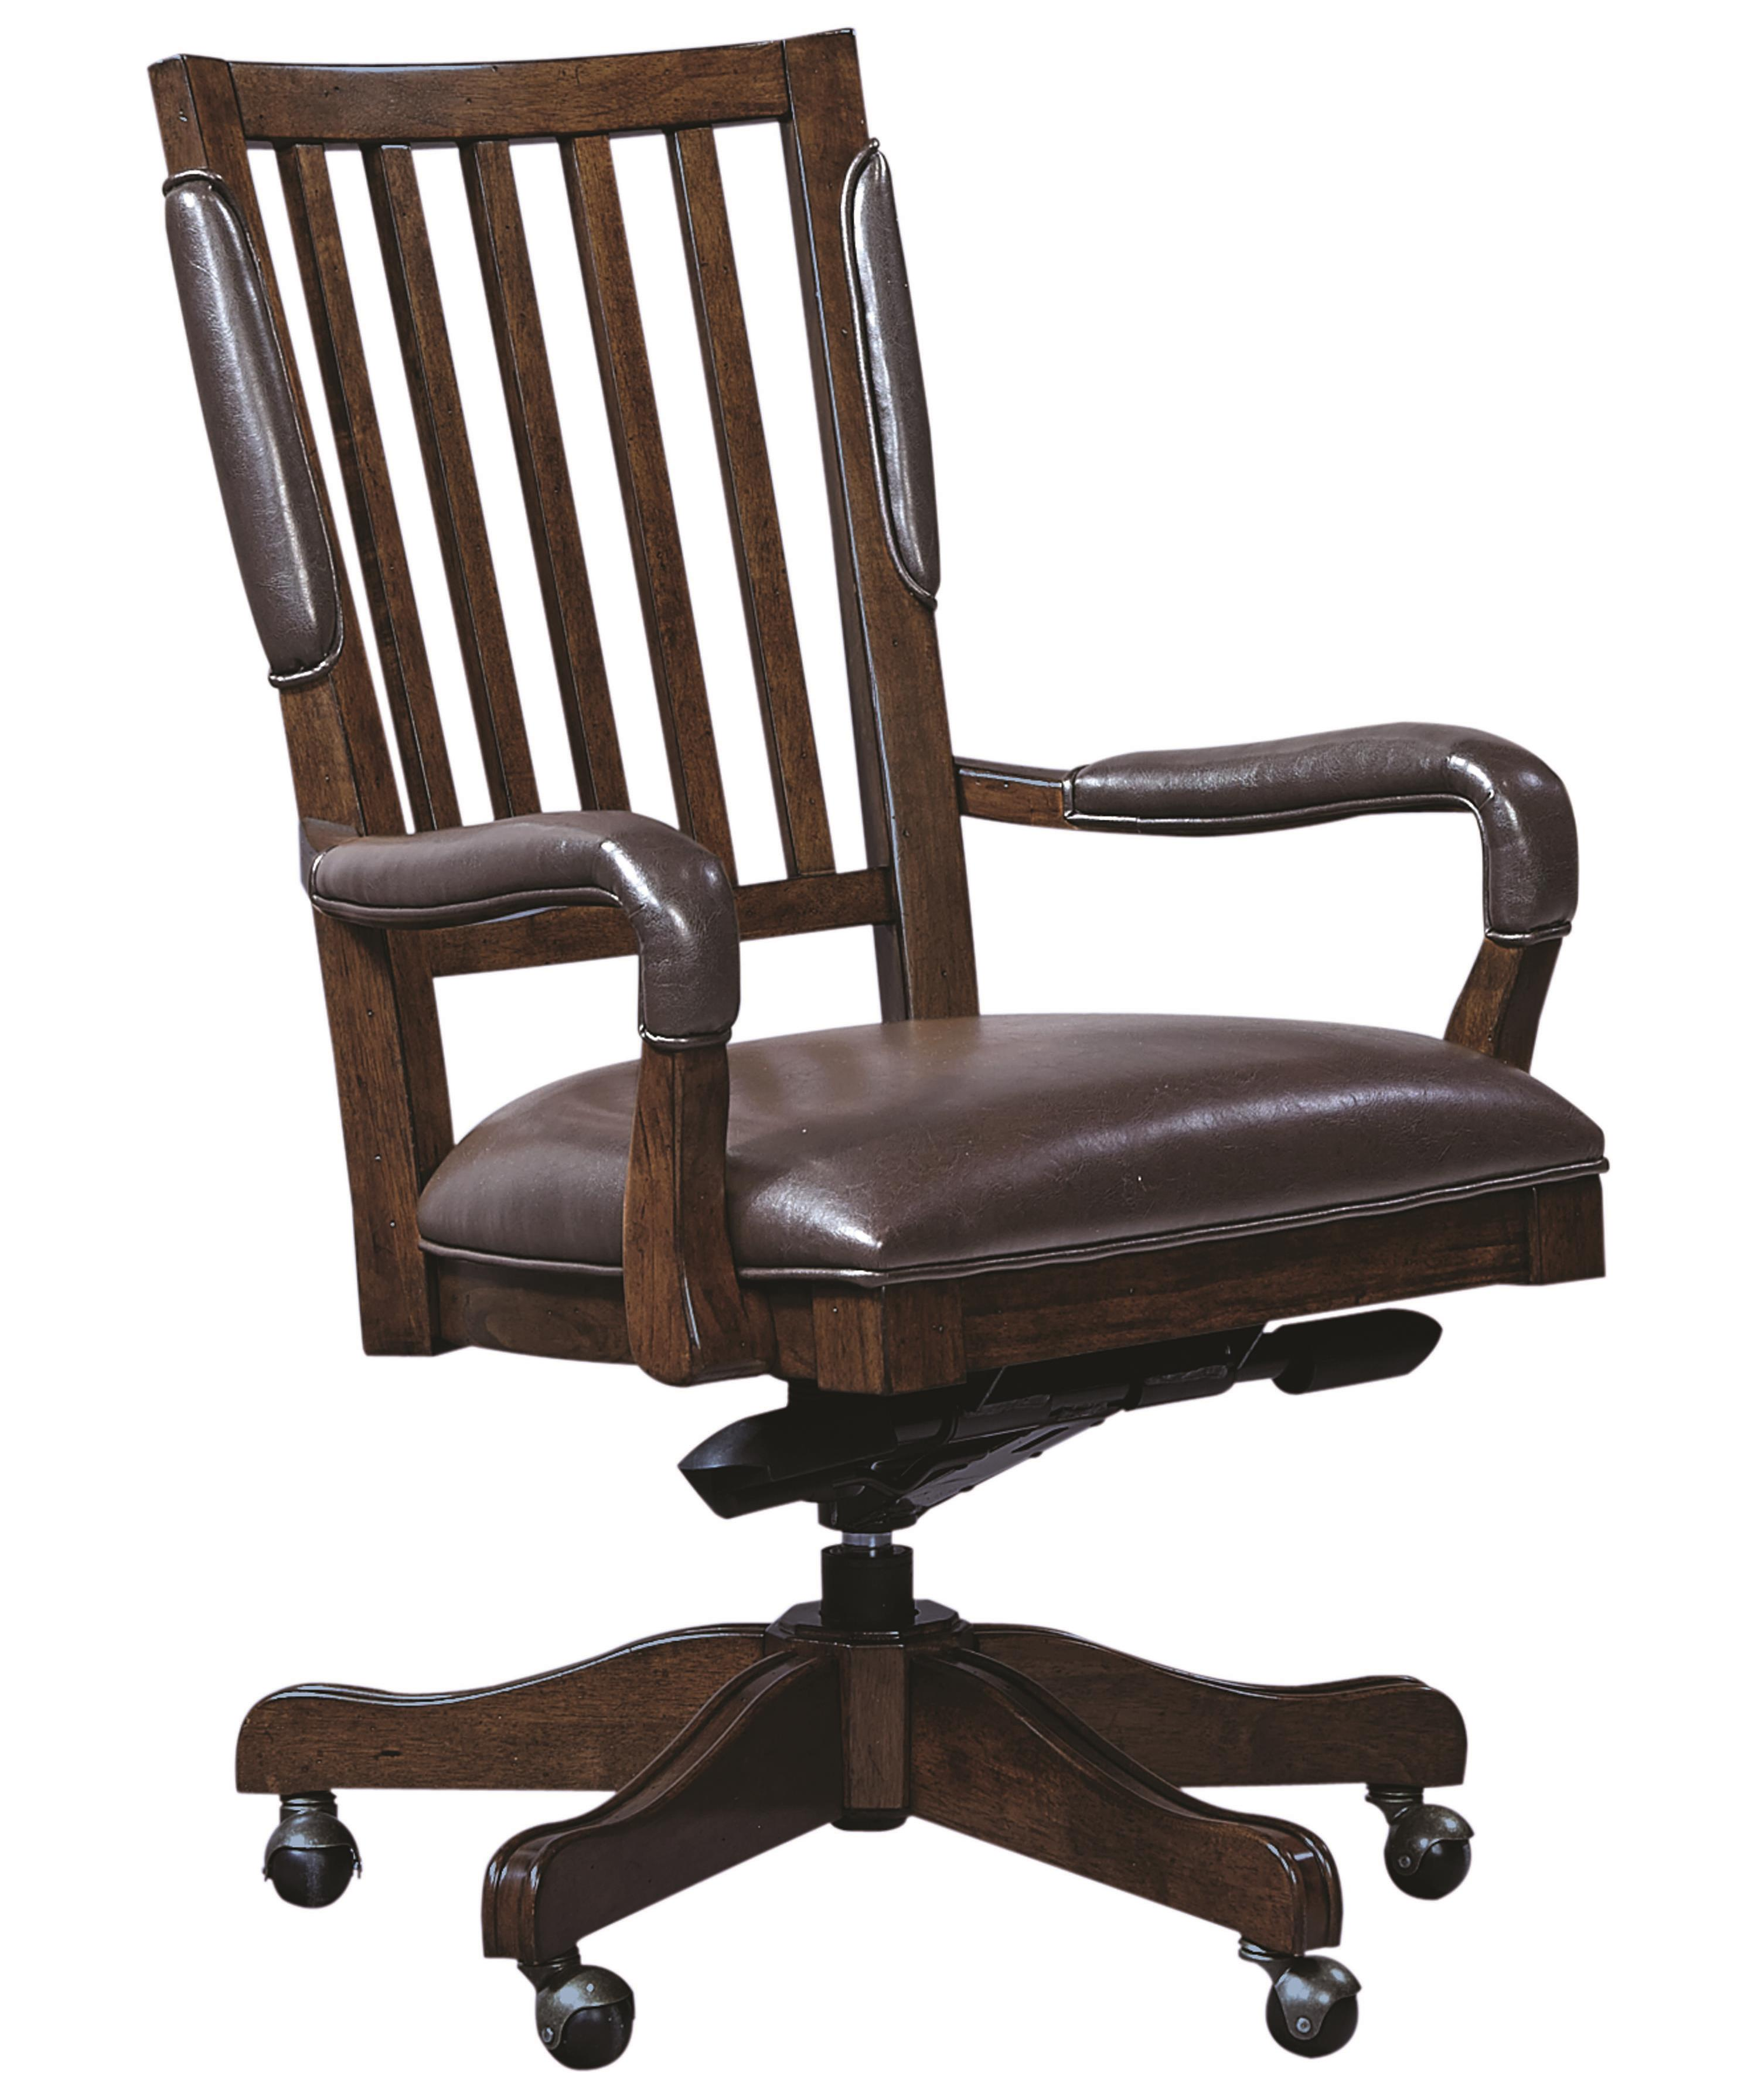 Aspenhome Essex Office Arm Chair - Item Number: I24-366A